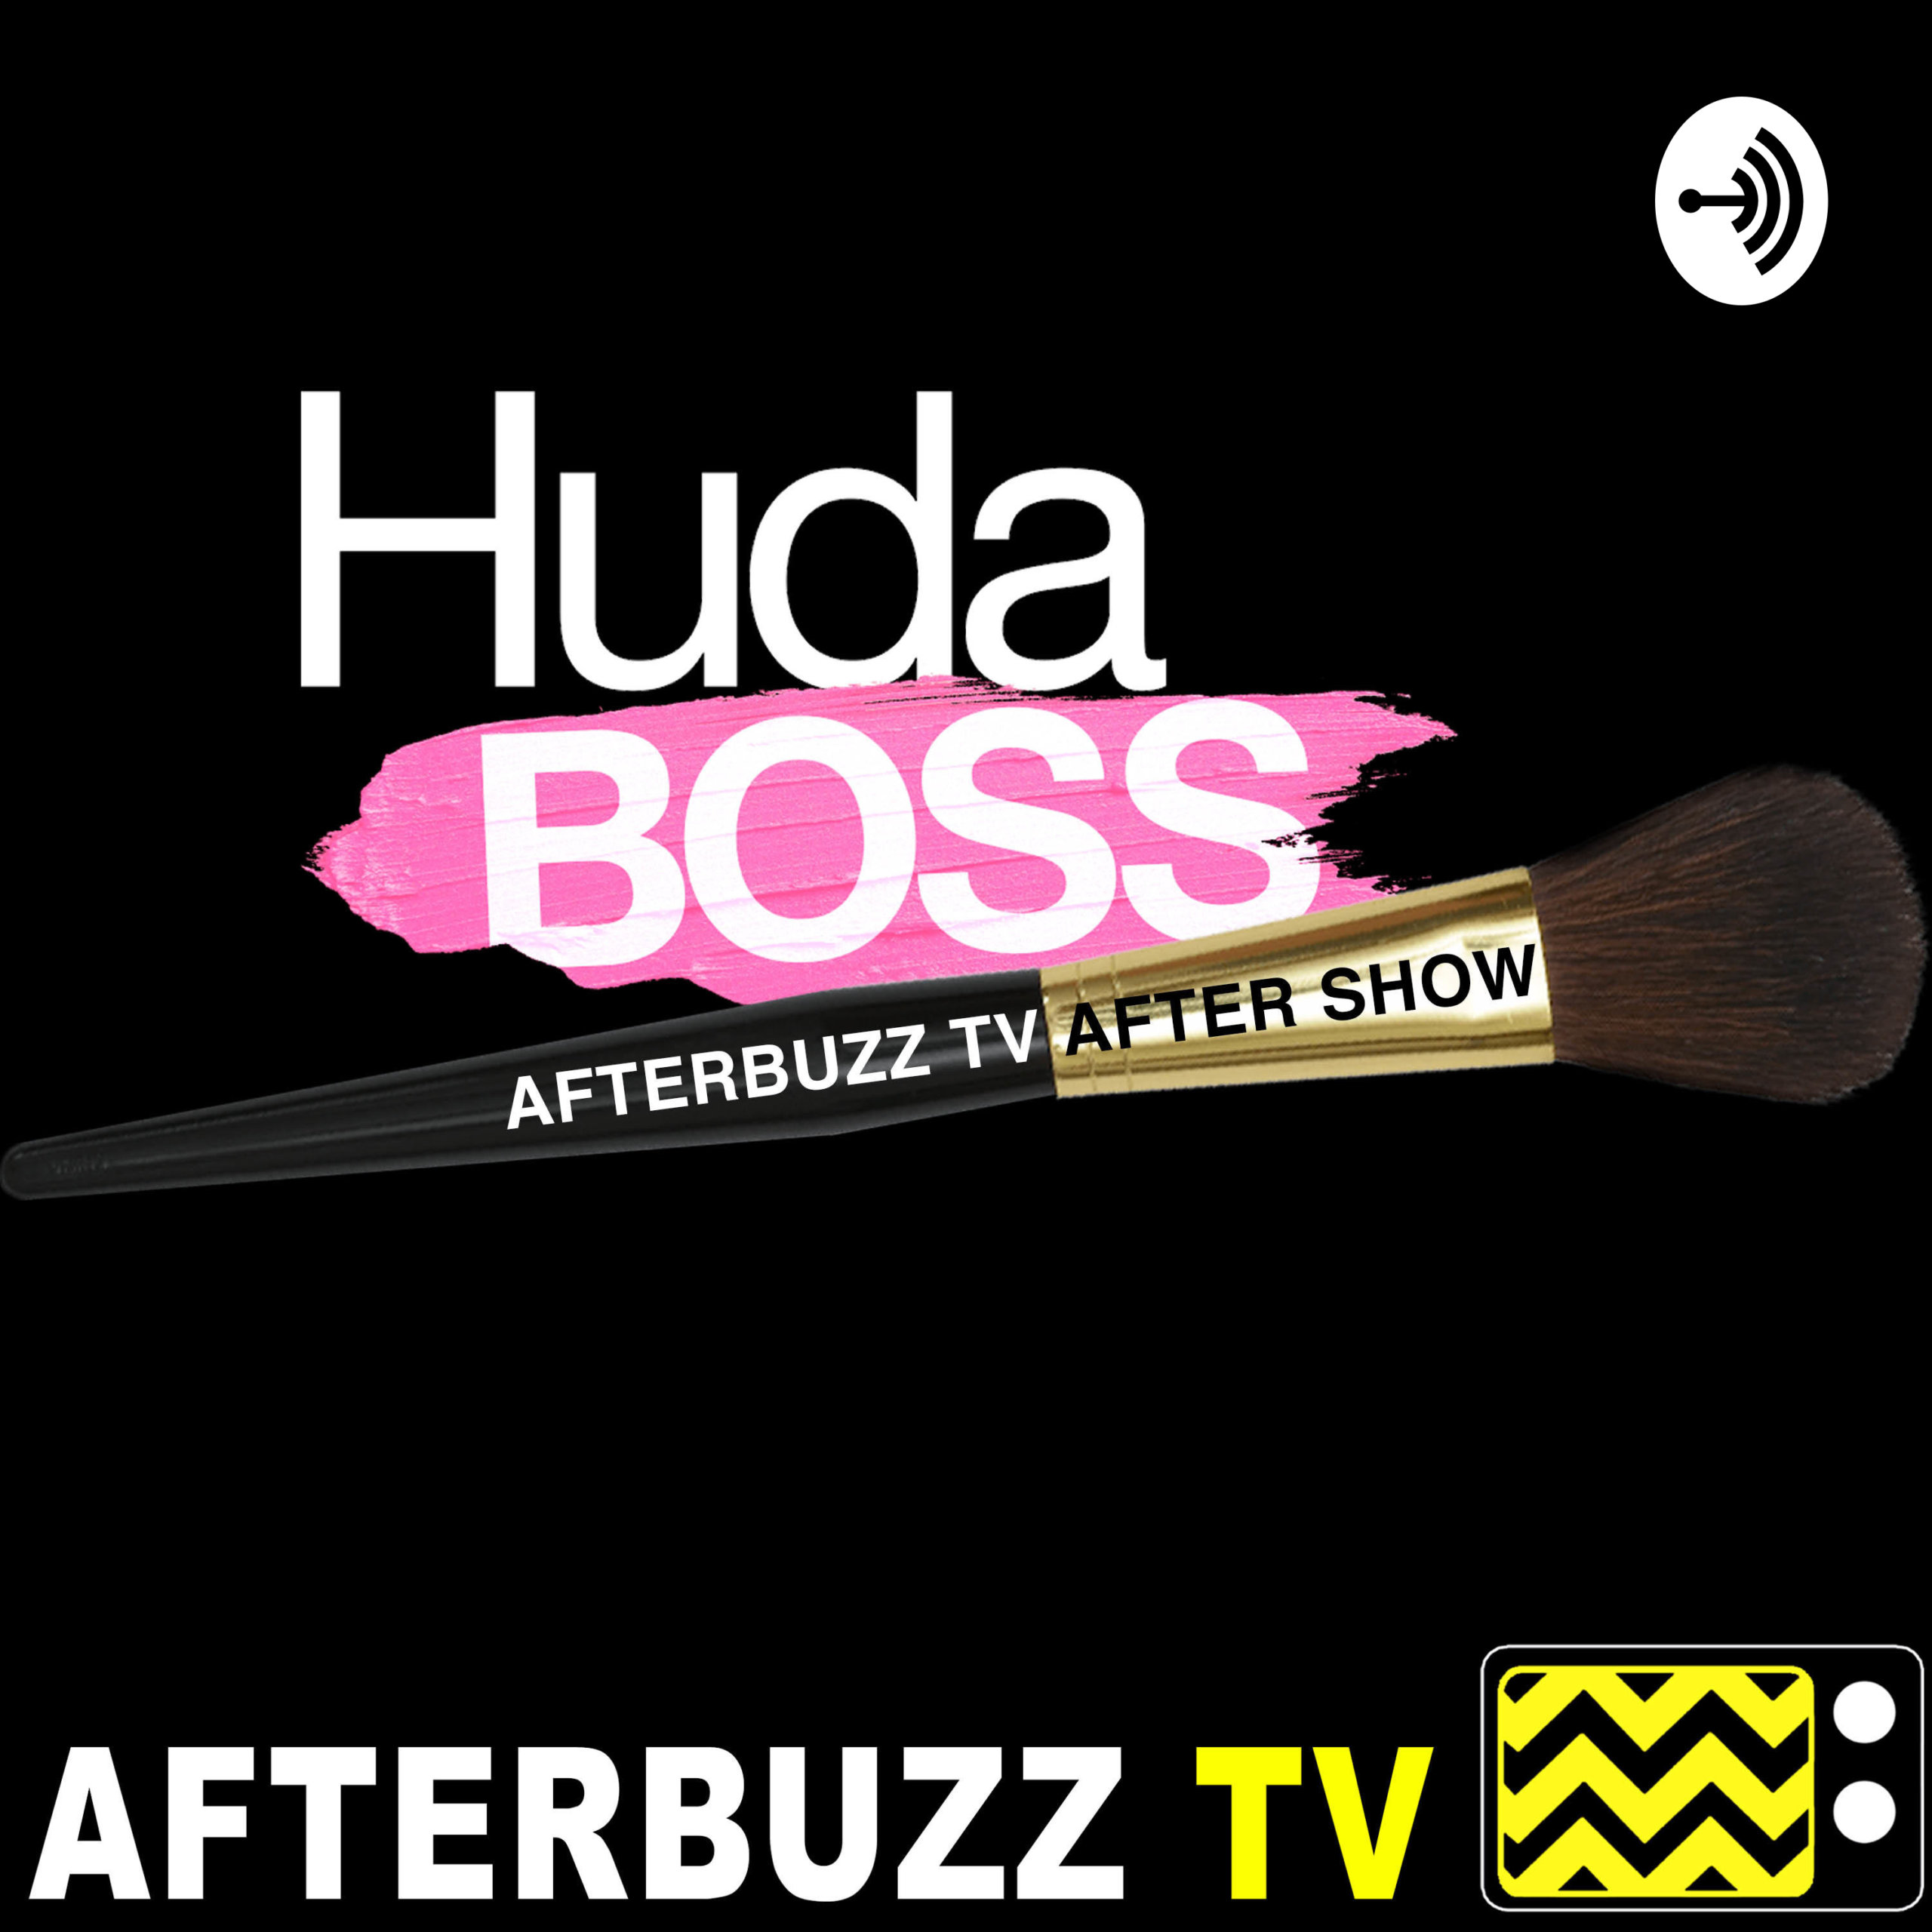 The Huda Boss Podcast